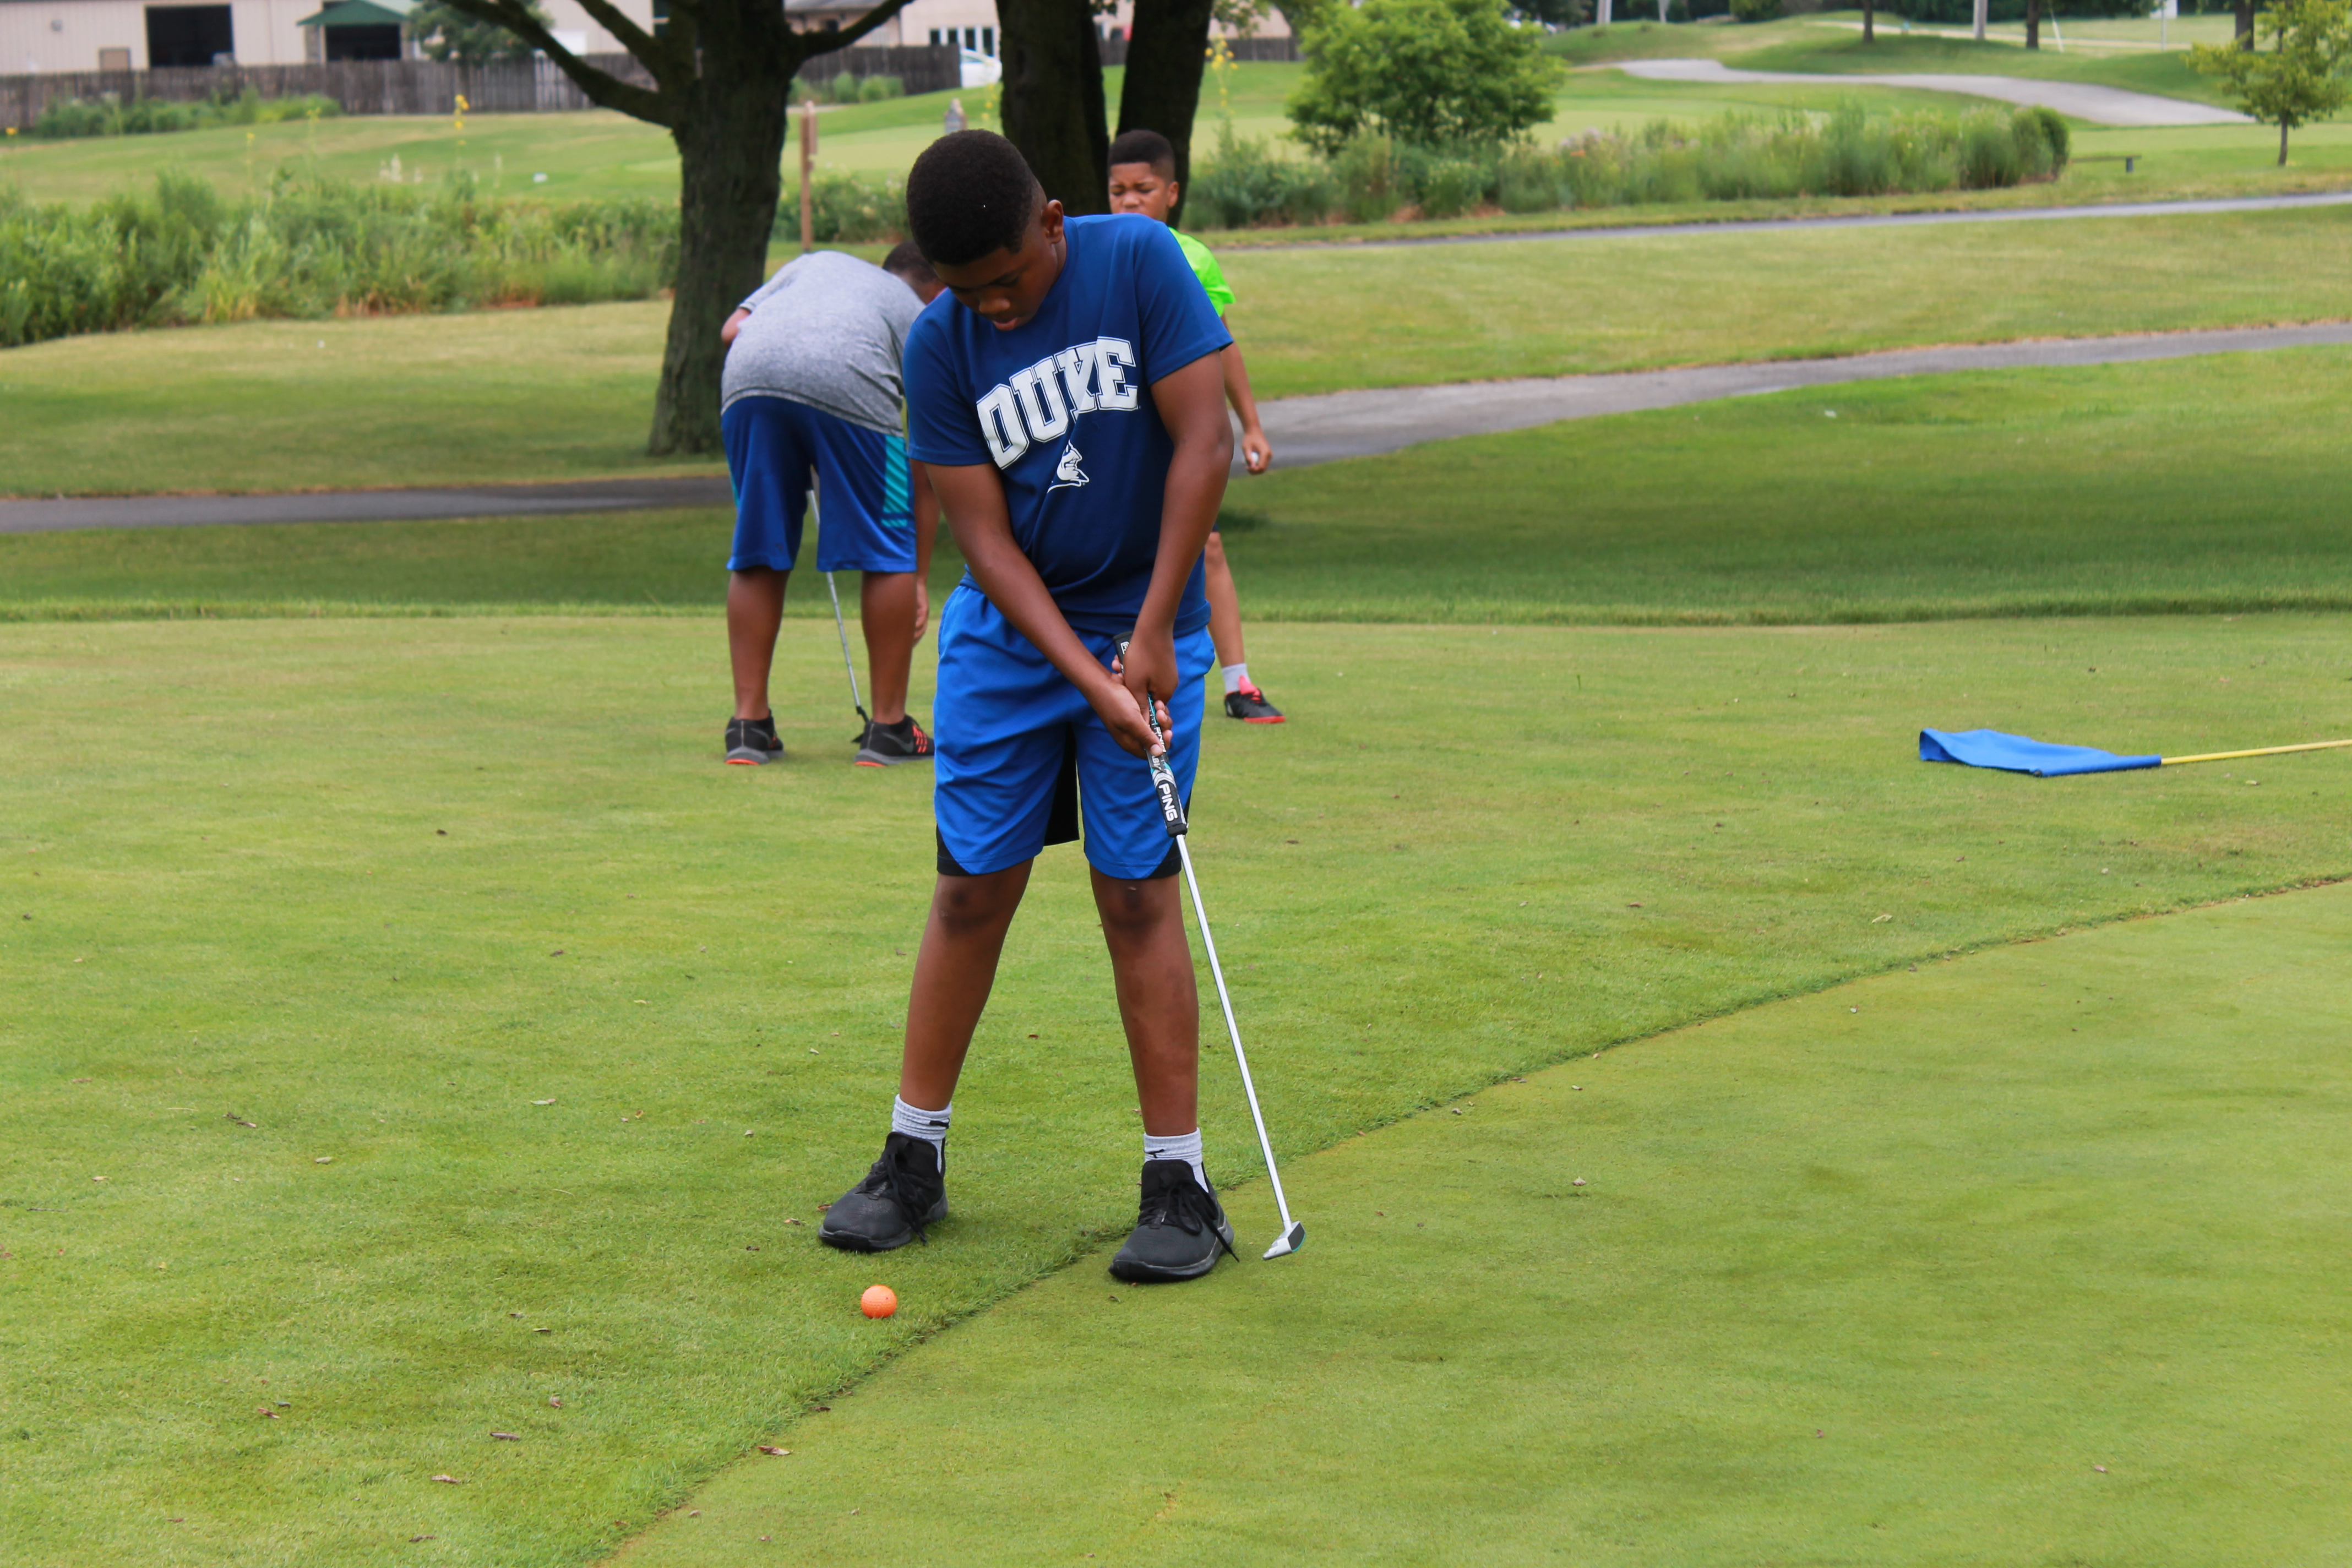 Jr. golfer practicing putting.